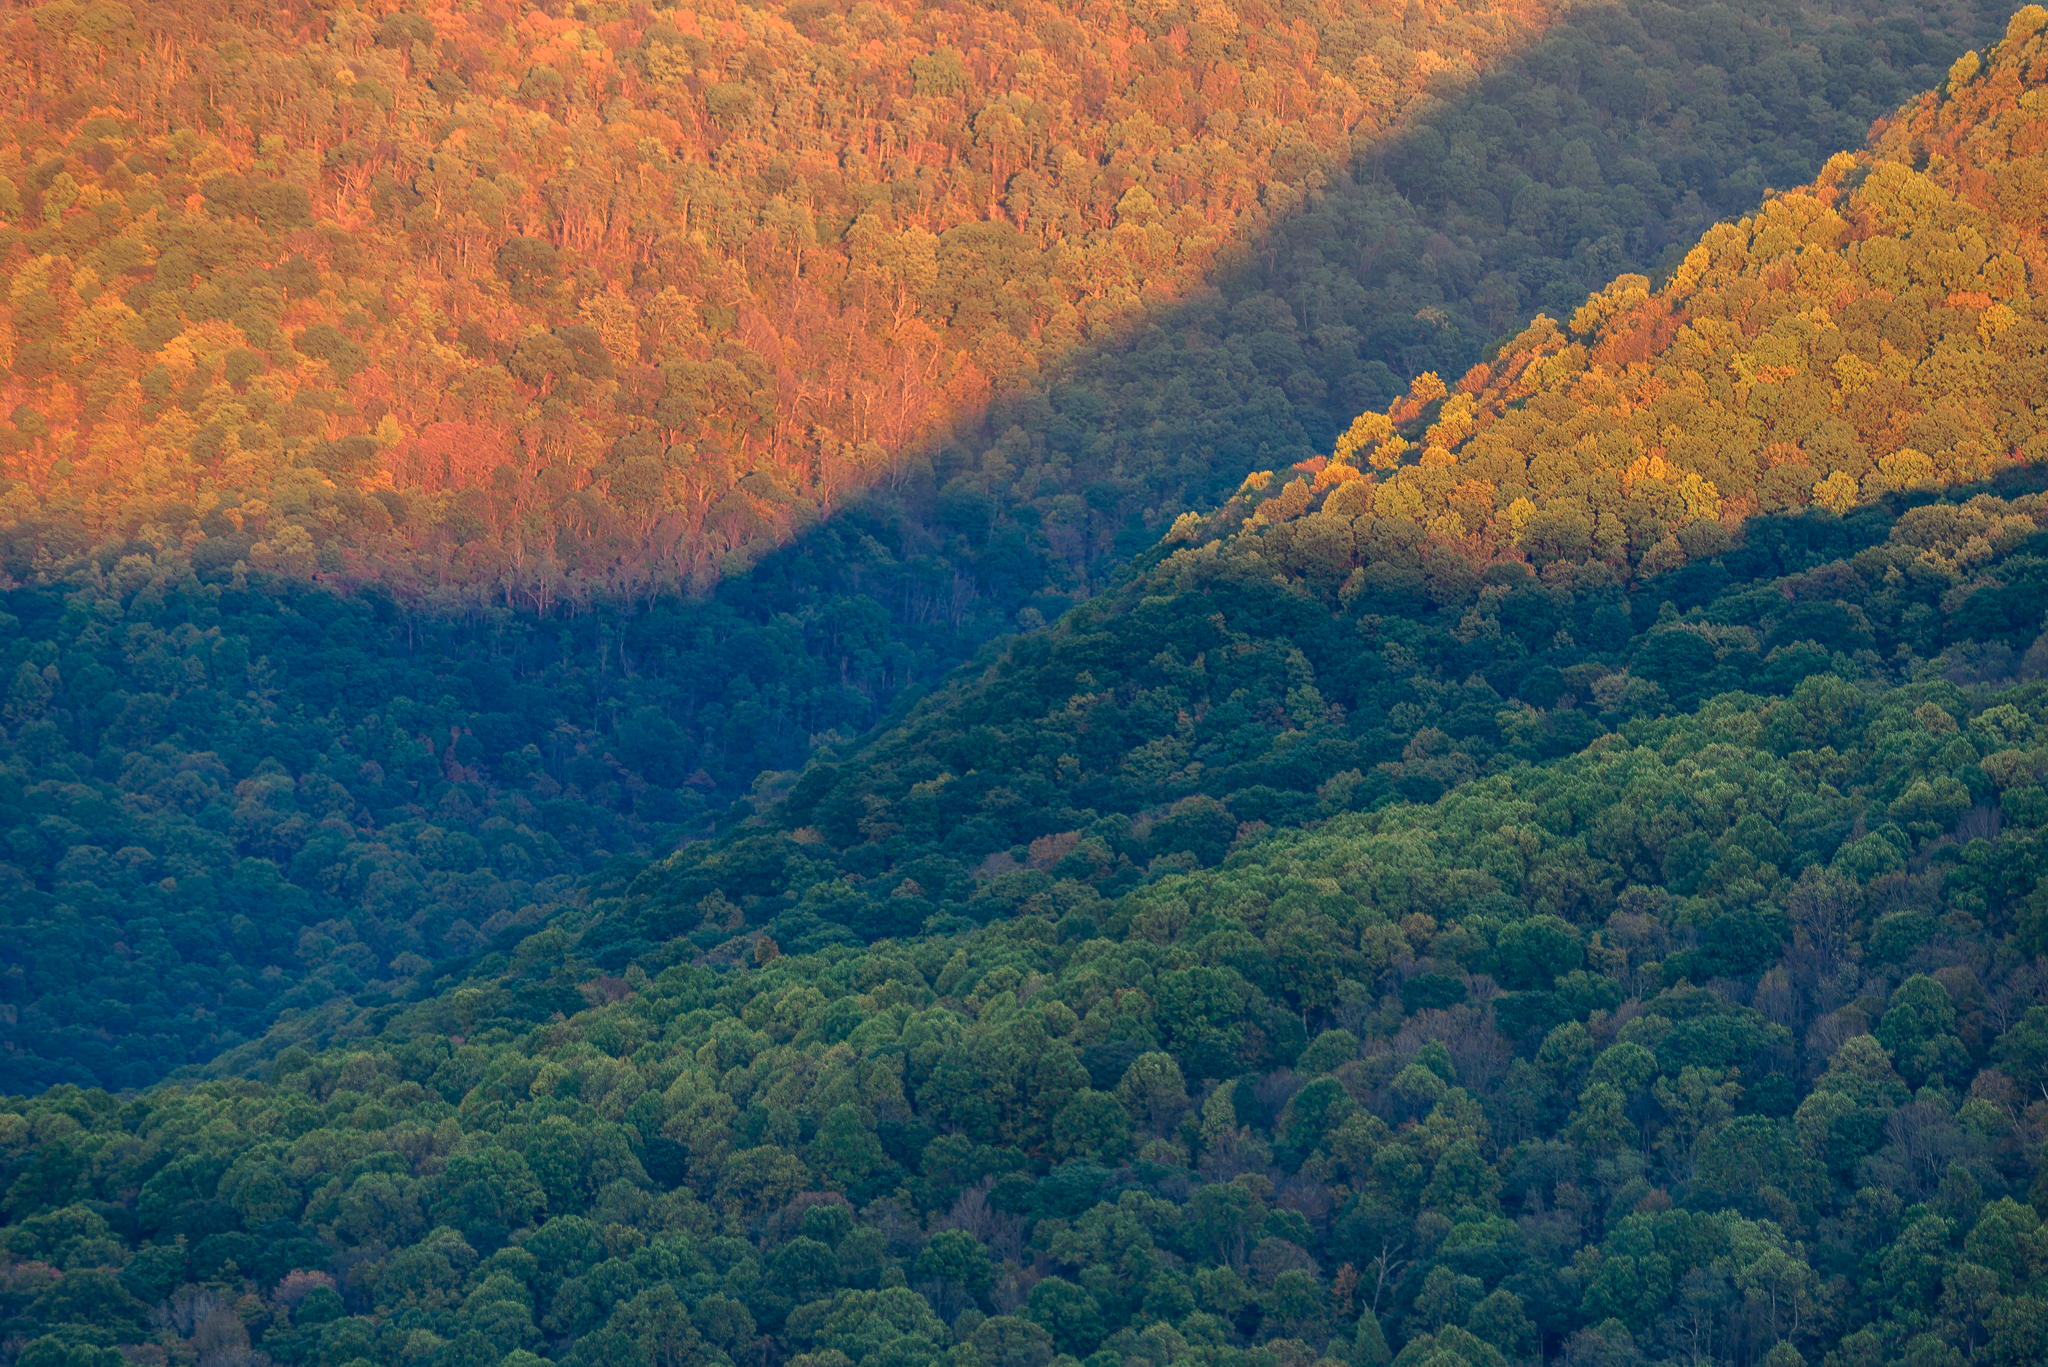 Sloping mountains making wonderful projection screens for the sun's late day rays. Ohiopyle State Park, PA.